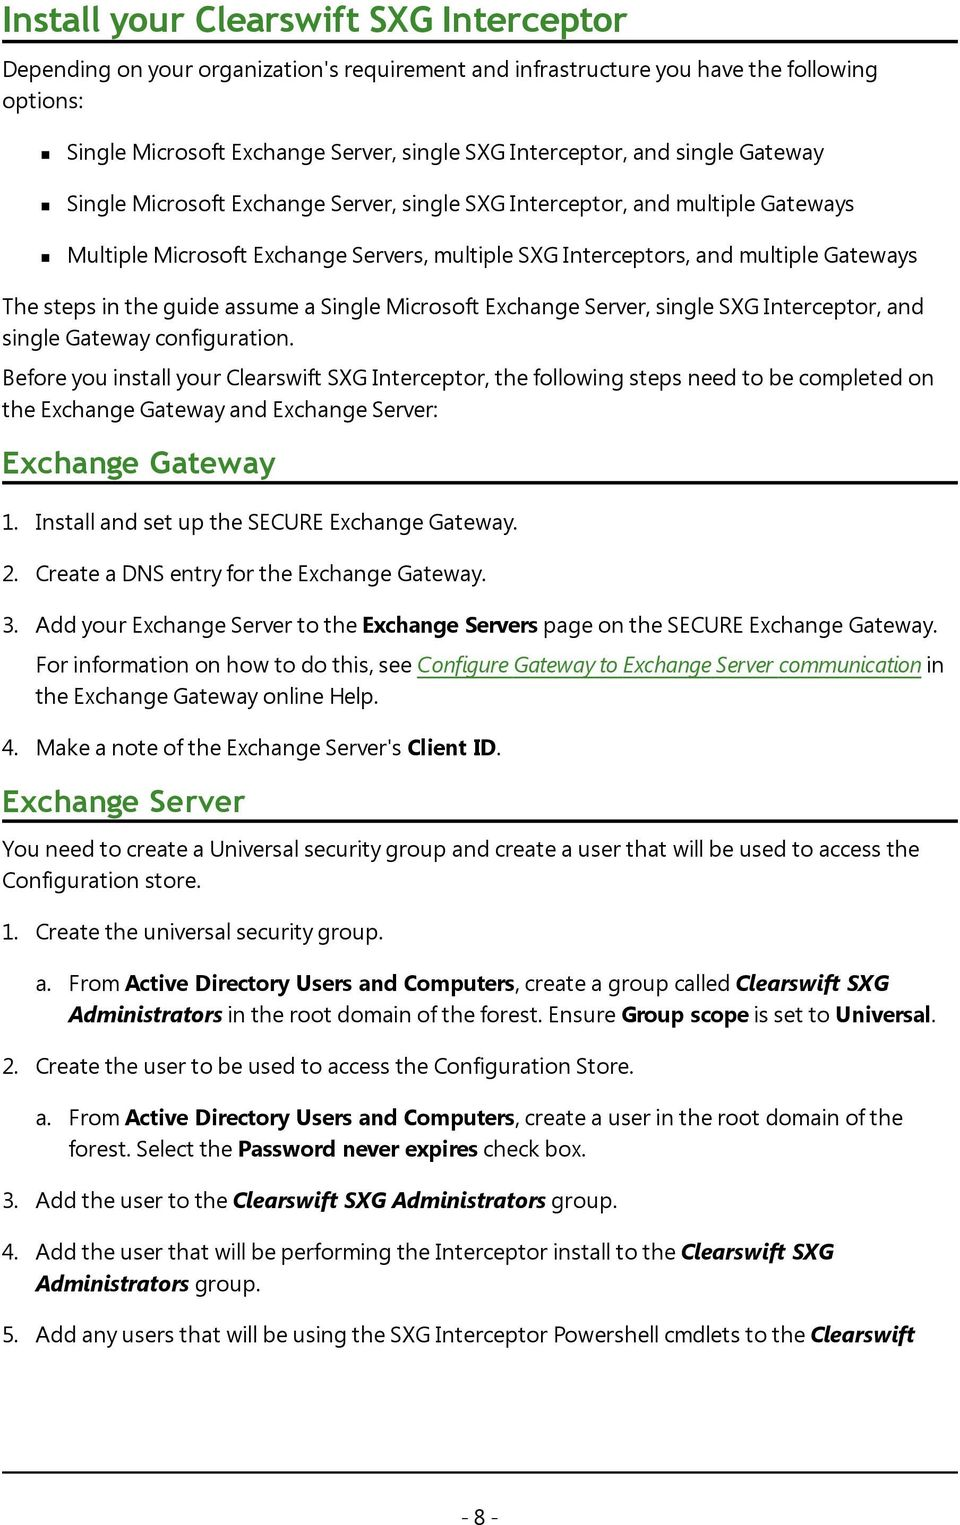 guide assume a Single Microsoft Exchange Server, single SXG Interceptor, and single Gateway configuration.